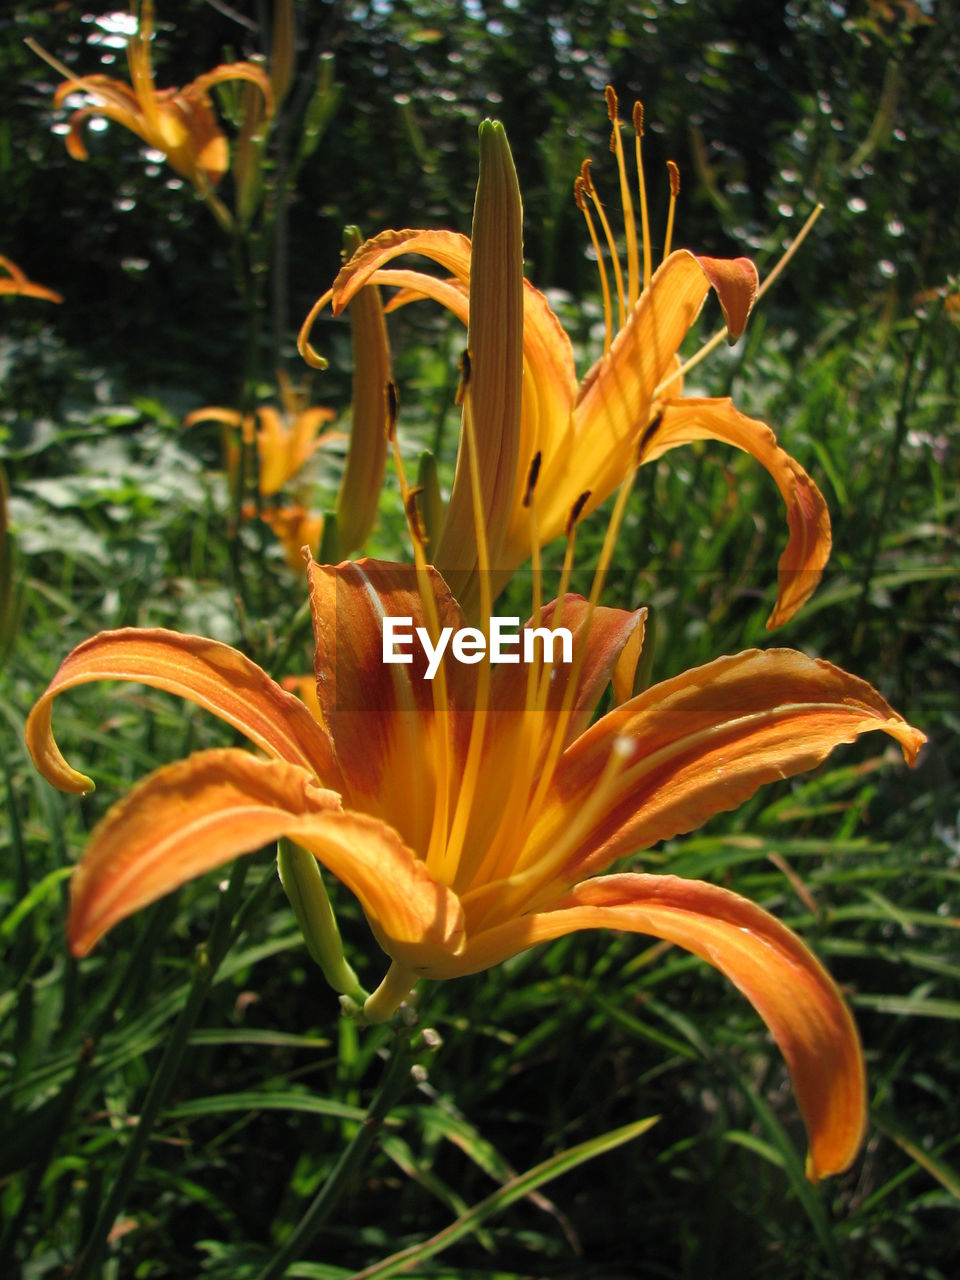 flower, growth, petal, day lily, freshness, flower head, beauty in nature, fragility, nature, plant, yellow, outdoors, no people, lily, close-up, day, blooming, springtime